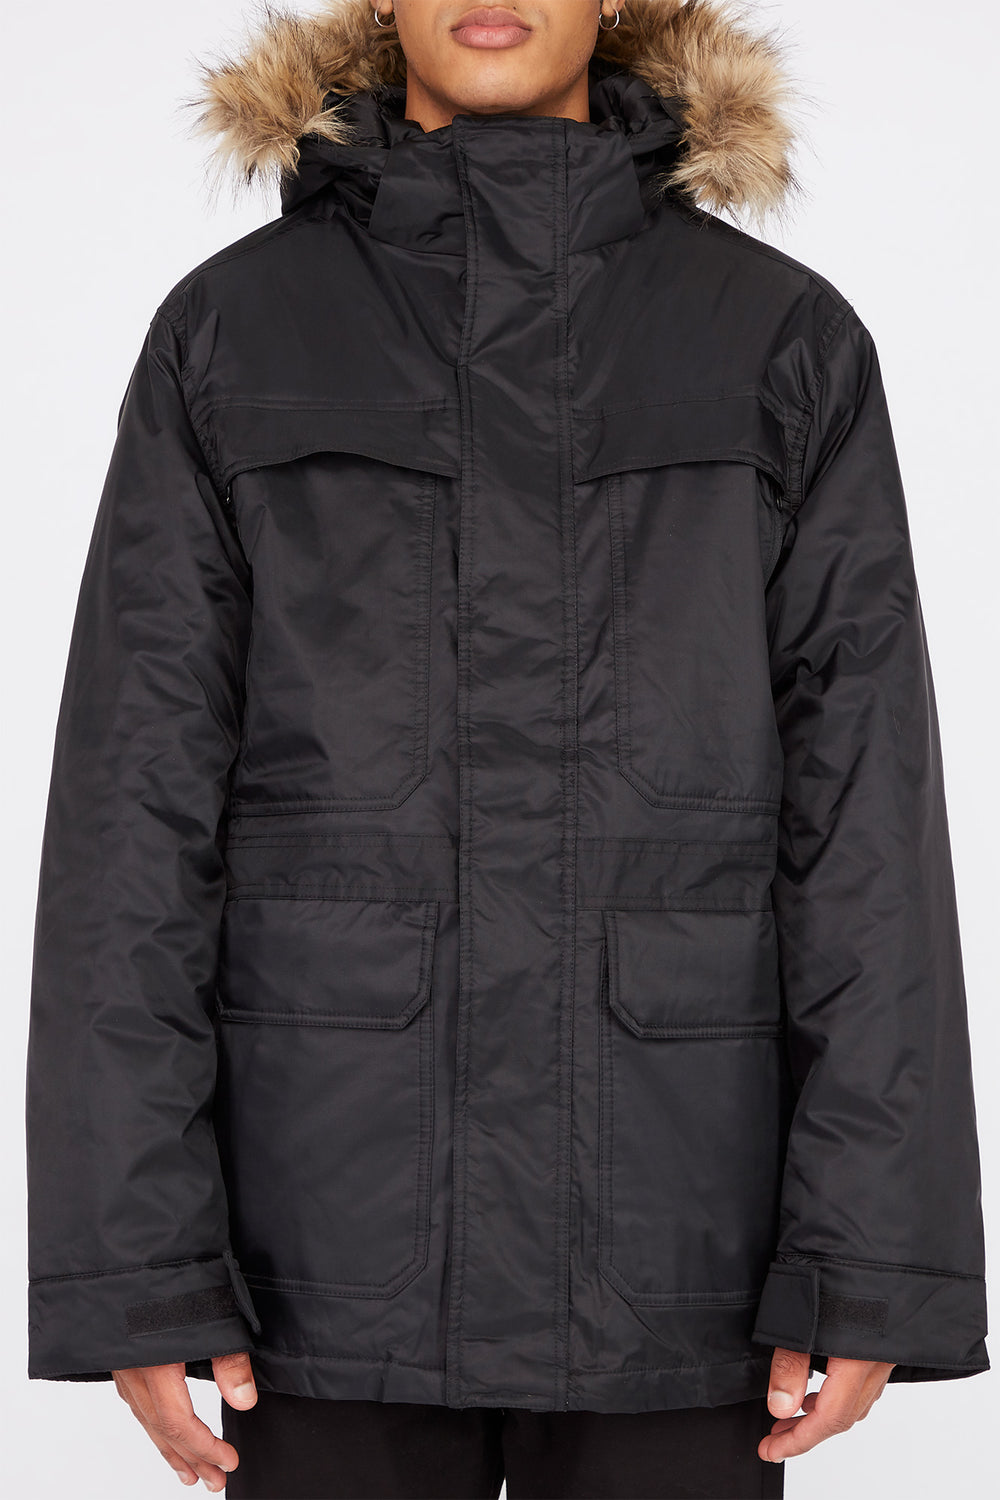 Storm Mountain Mens Arctic Series Utility Parka Jacket Black